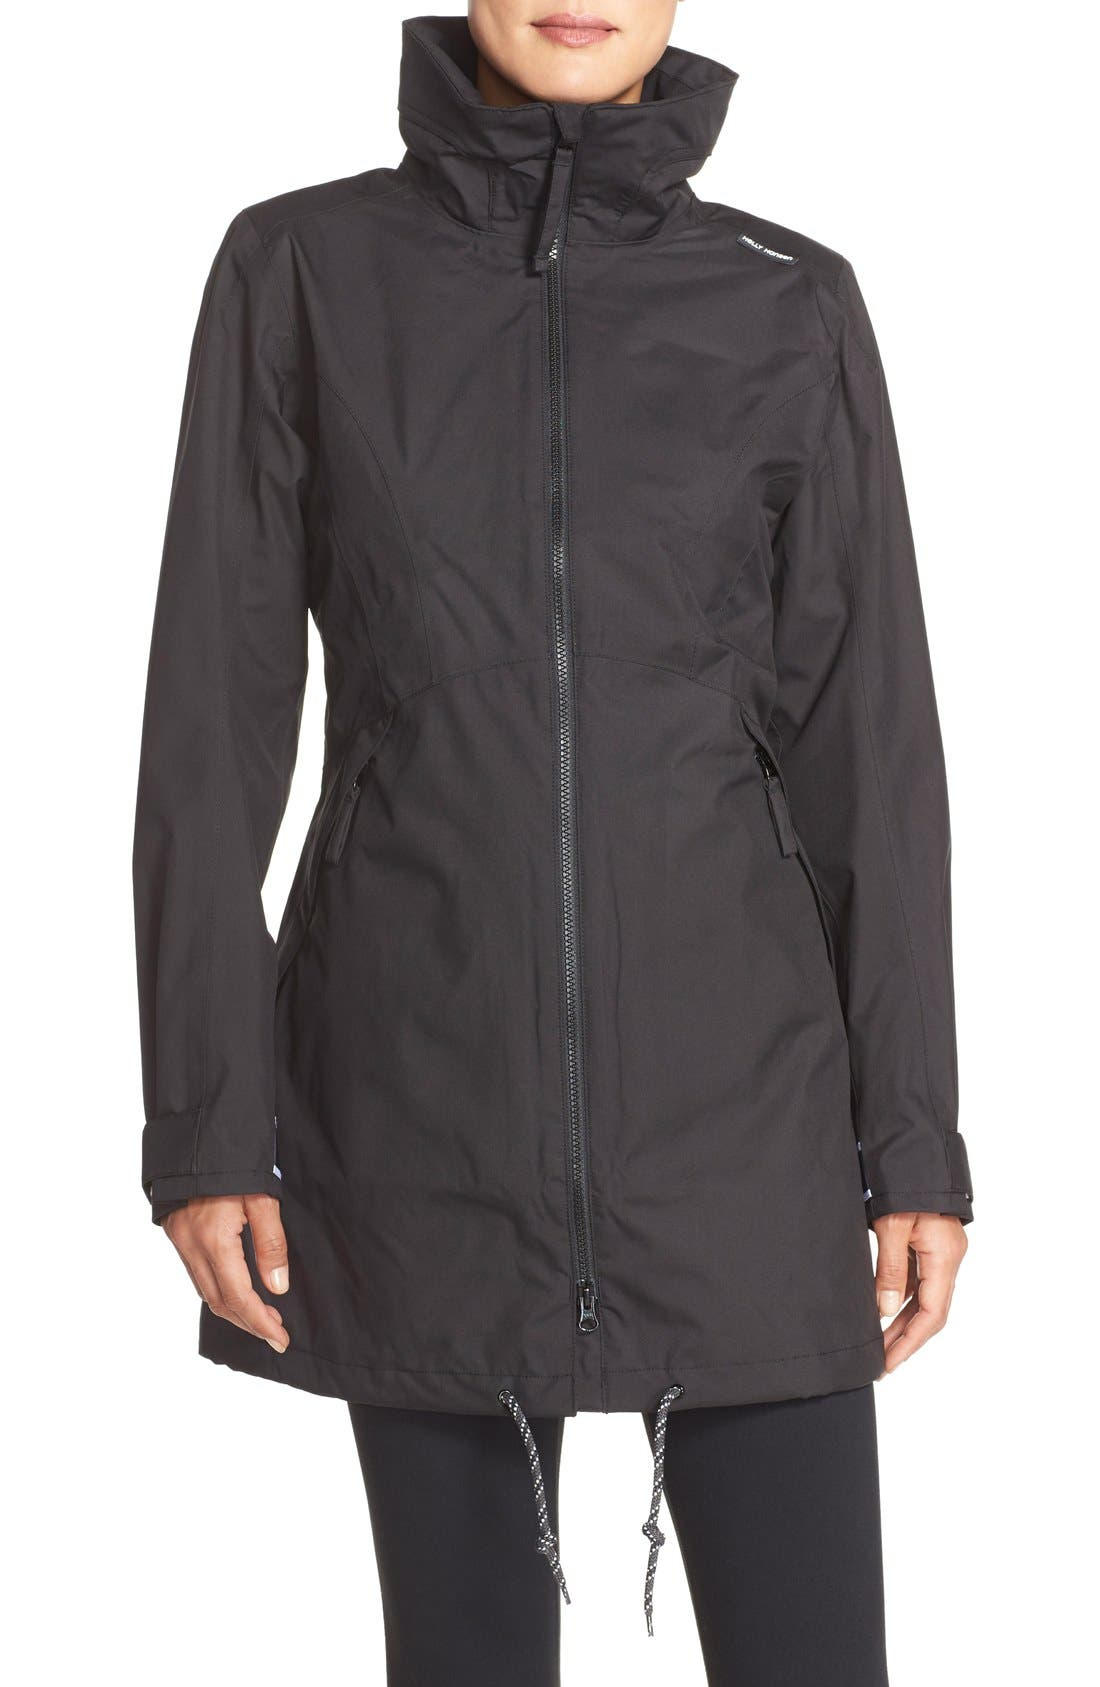 Main Image - Helly Hansen 'Laurel' Waterproof Coat